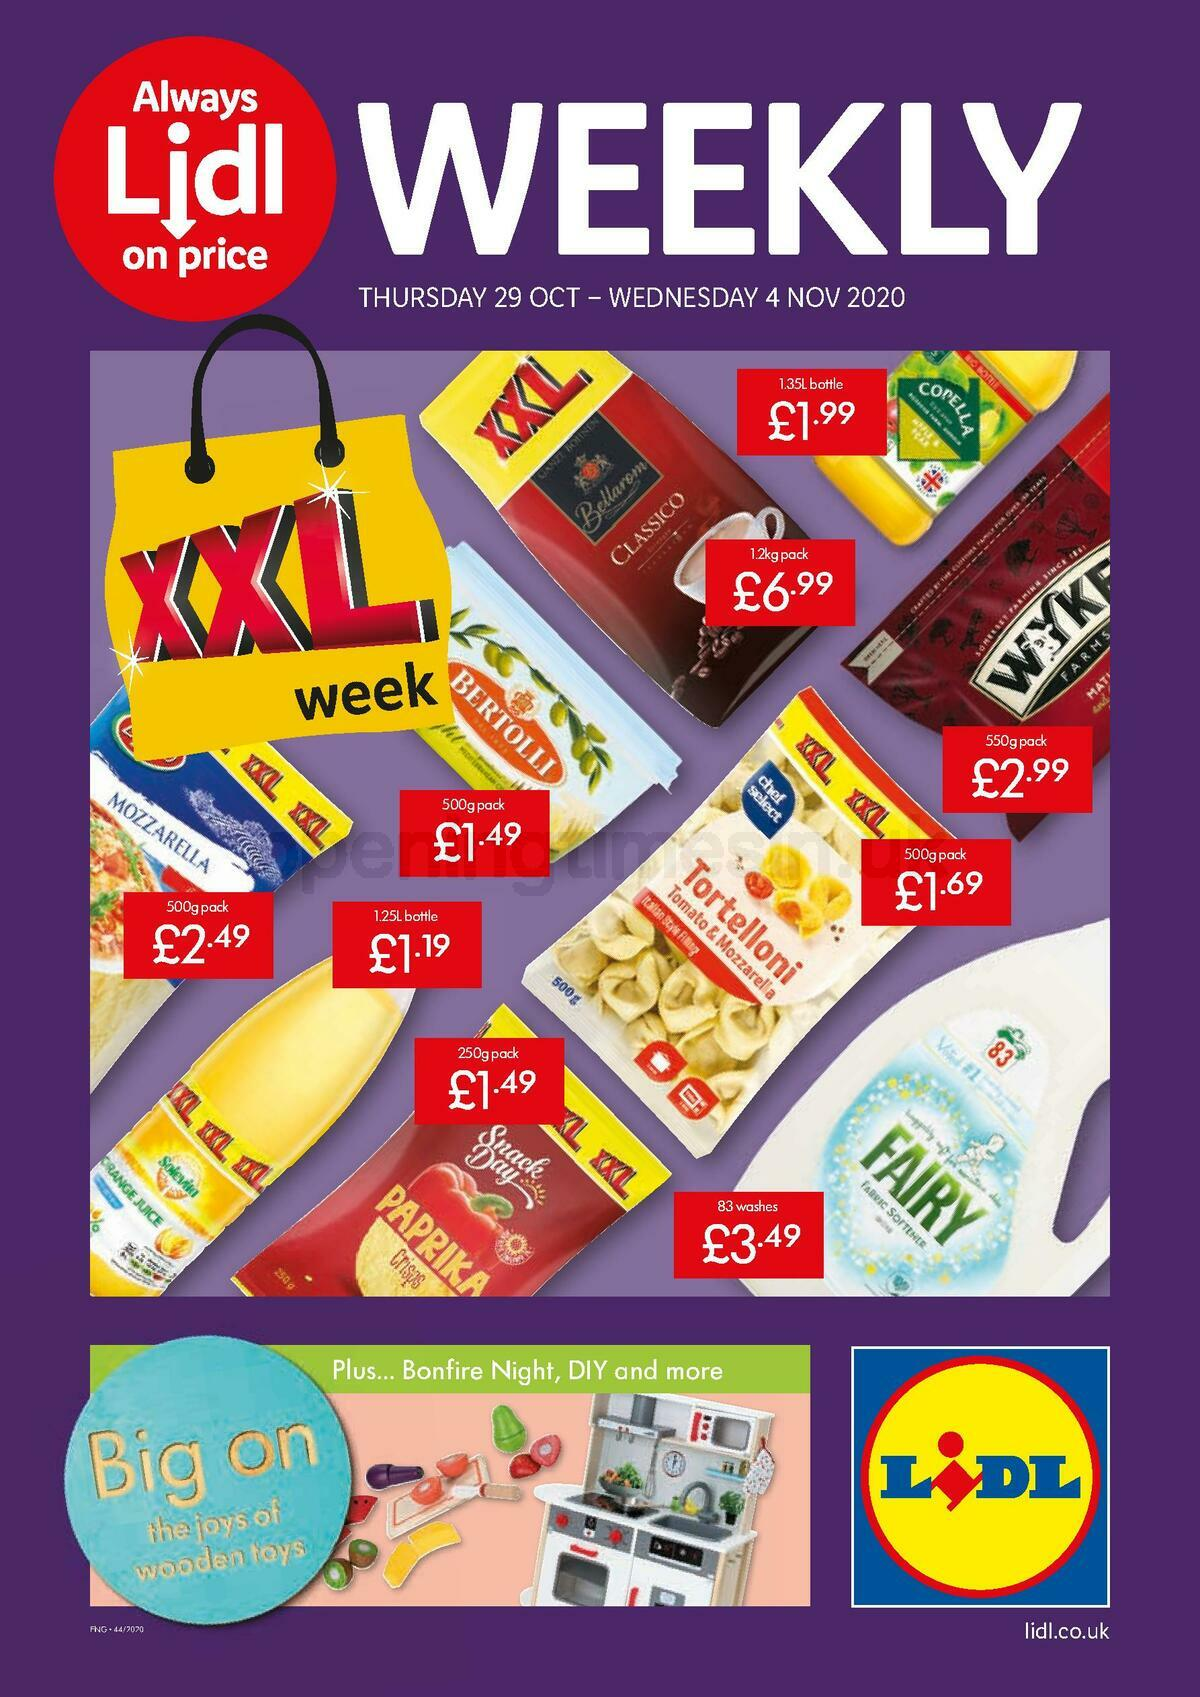 LIDL Offers from October 29